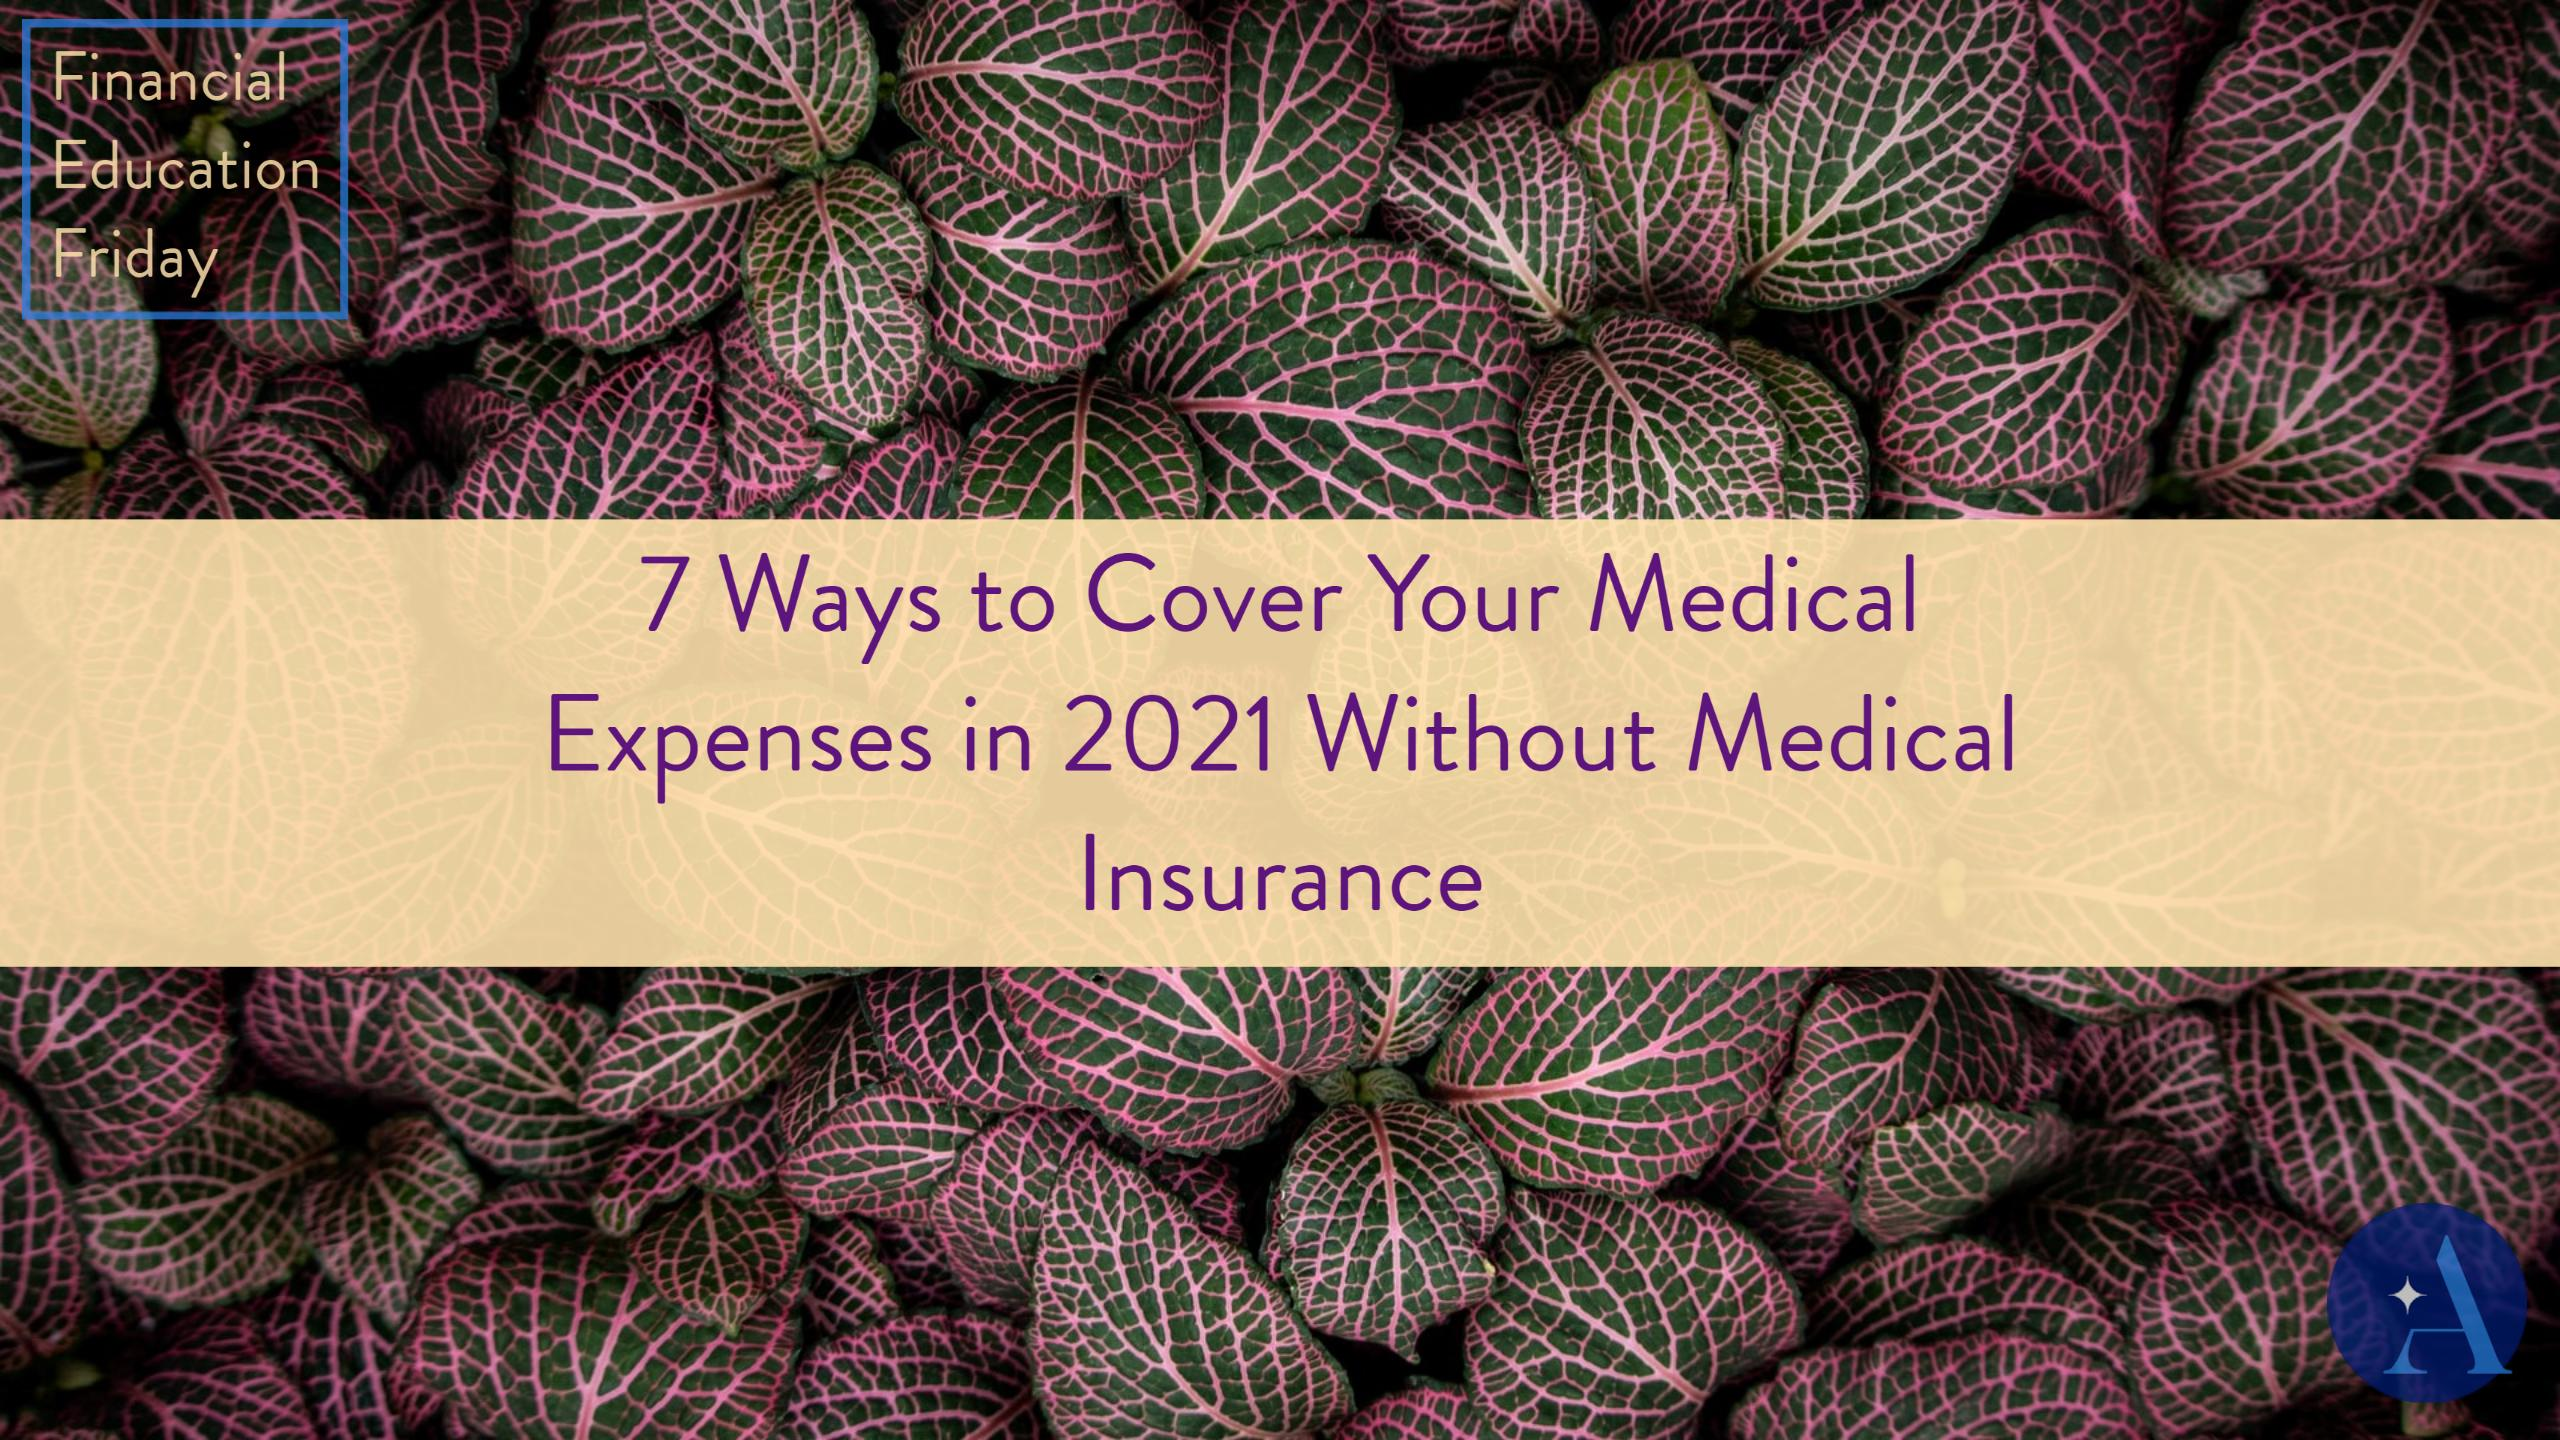 FinEdFriday: 7 Ways to Cover Your Medical Expenses in 2021 Without Medical Insurance Thumbnail